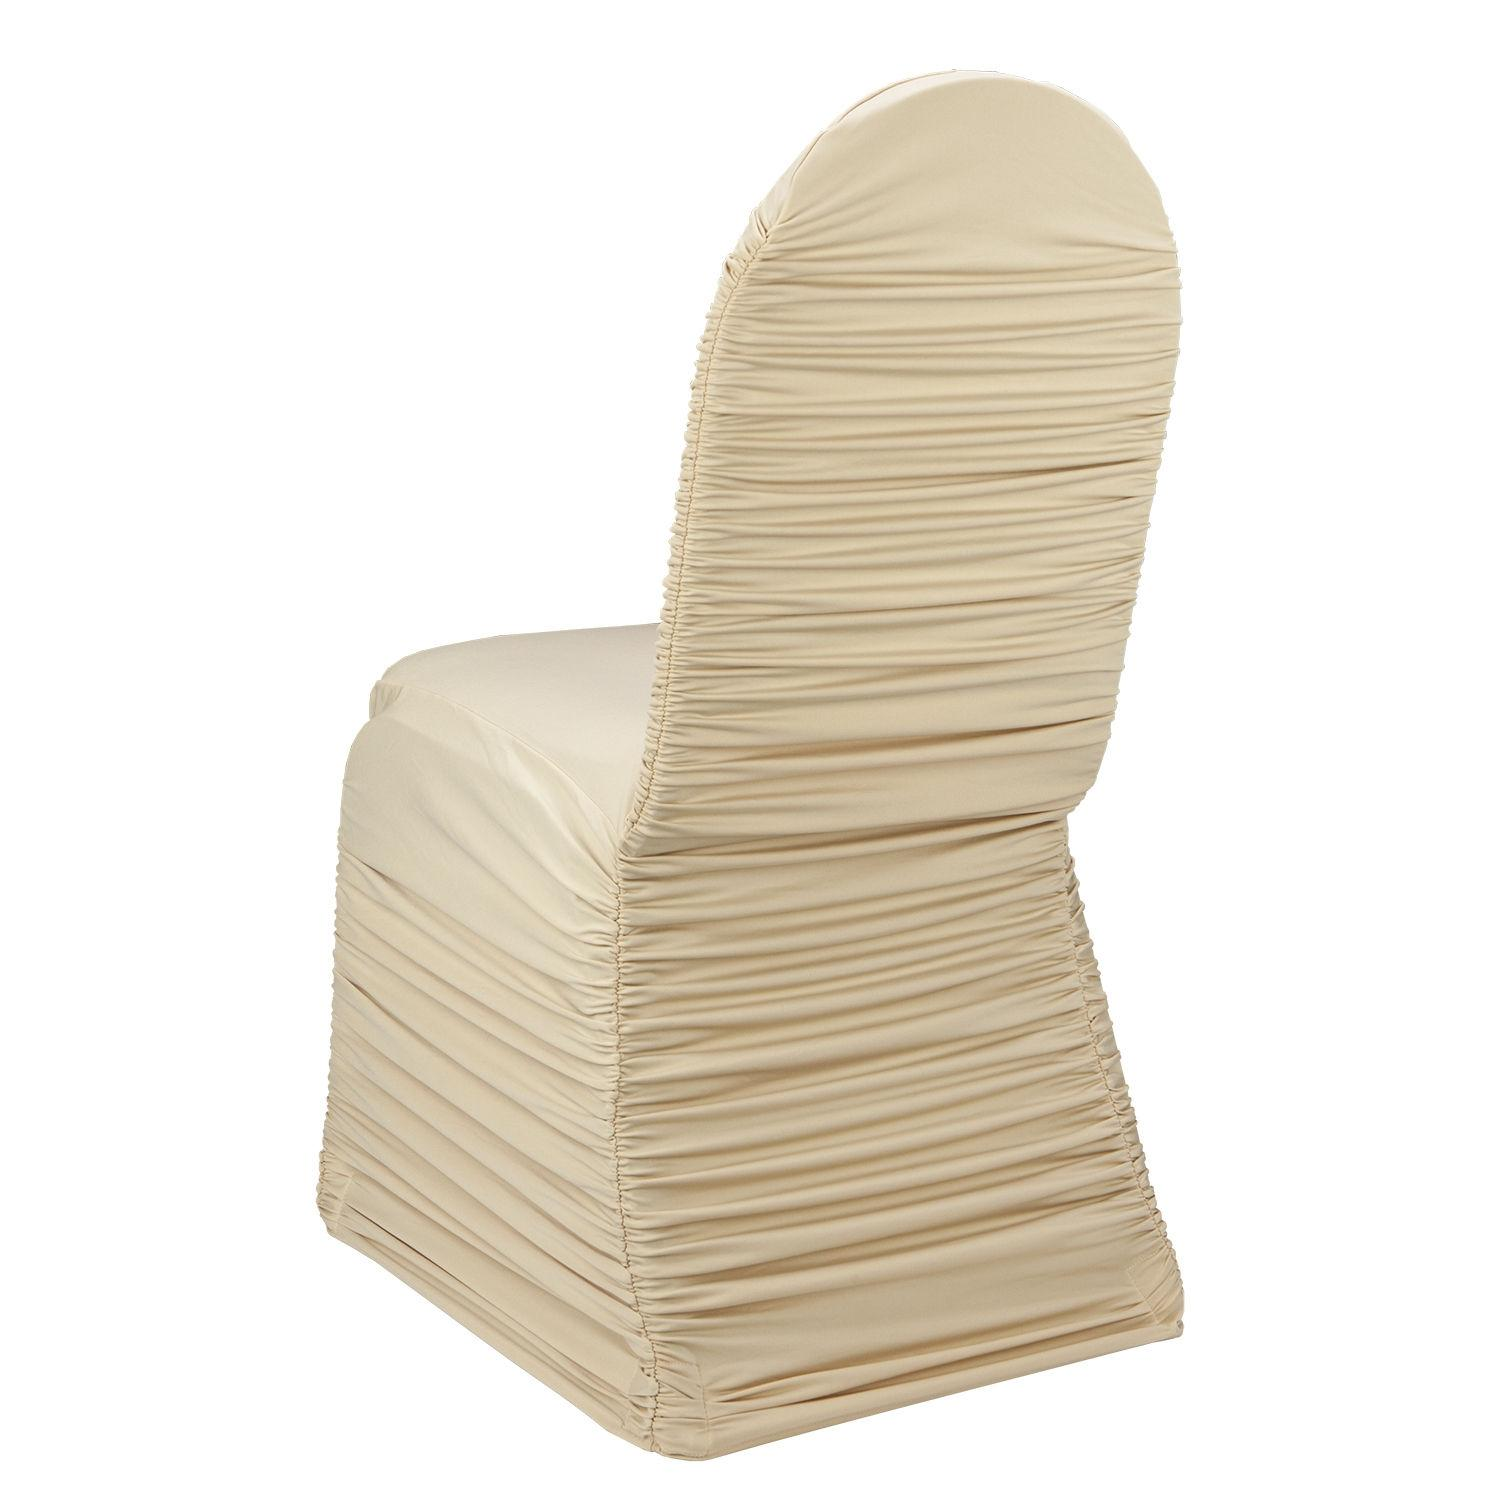 Wholesale Ivory Ruched Lycra Chair Cover For Wedding Party Banquet Slipcovers